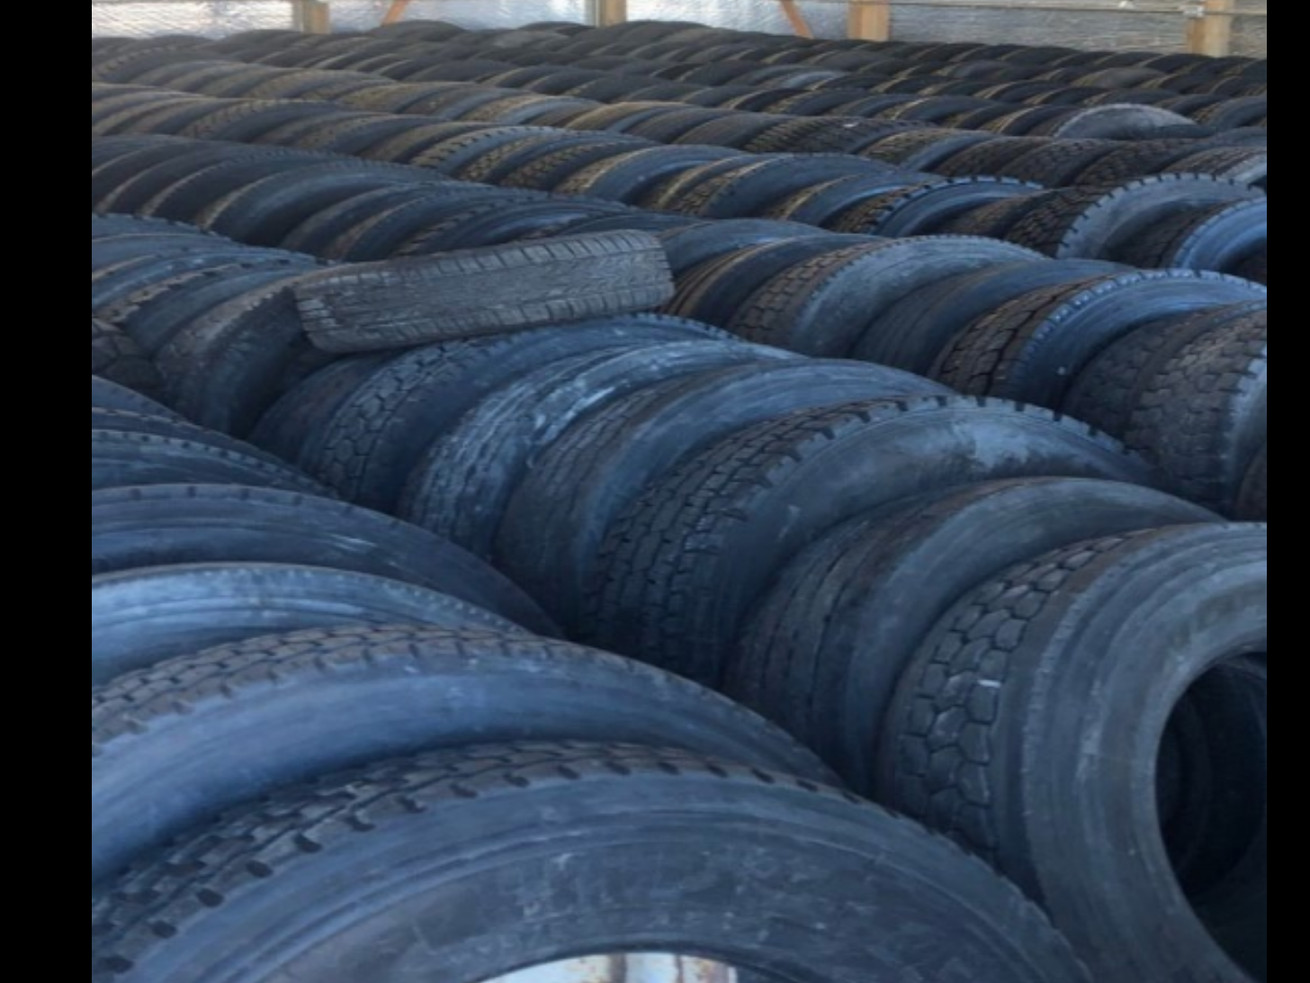 Police say they recovered more than 300 stolen tires in Harvey, pictured here.